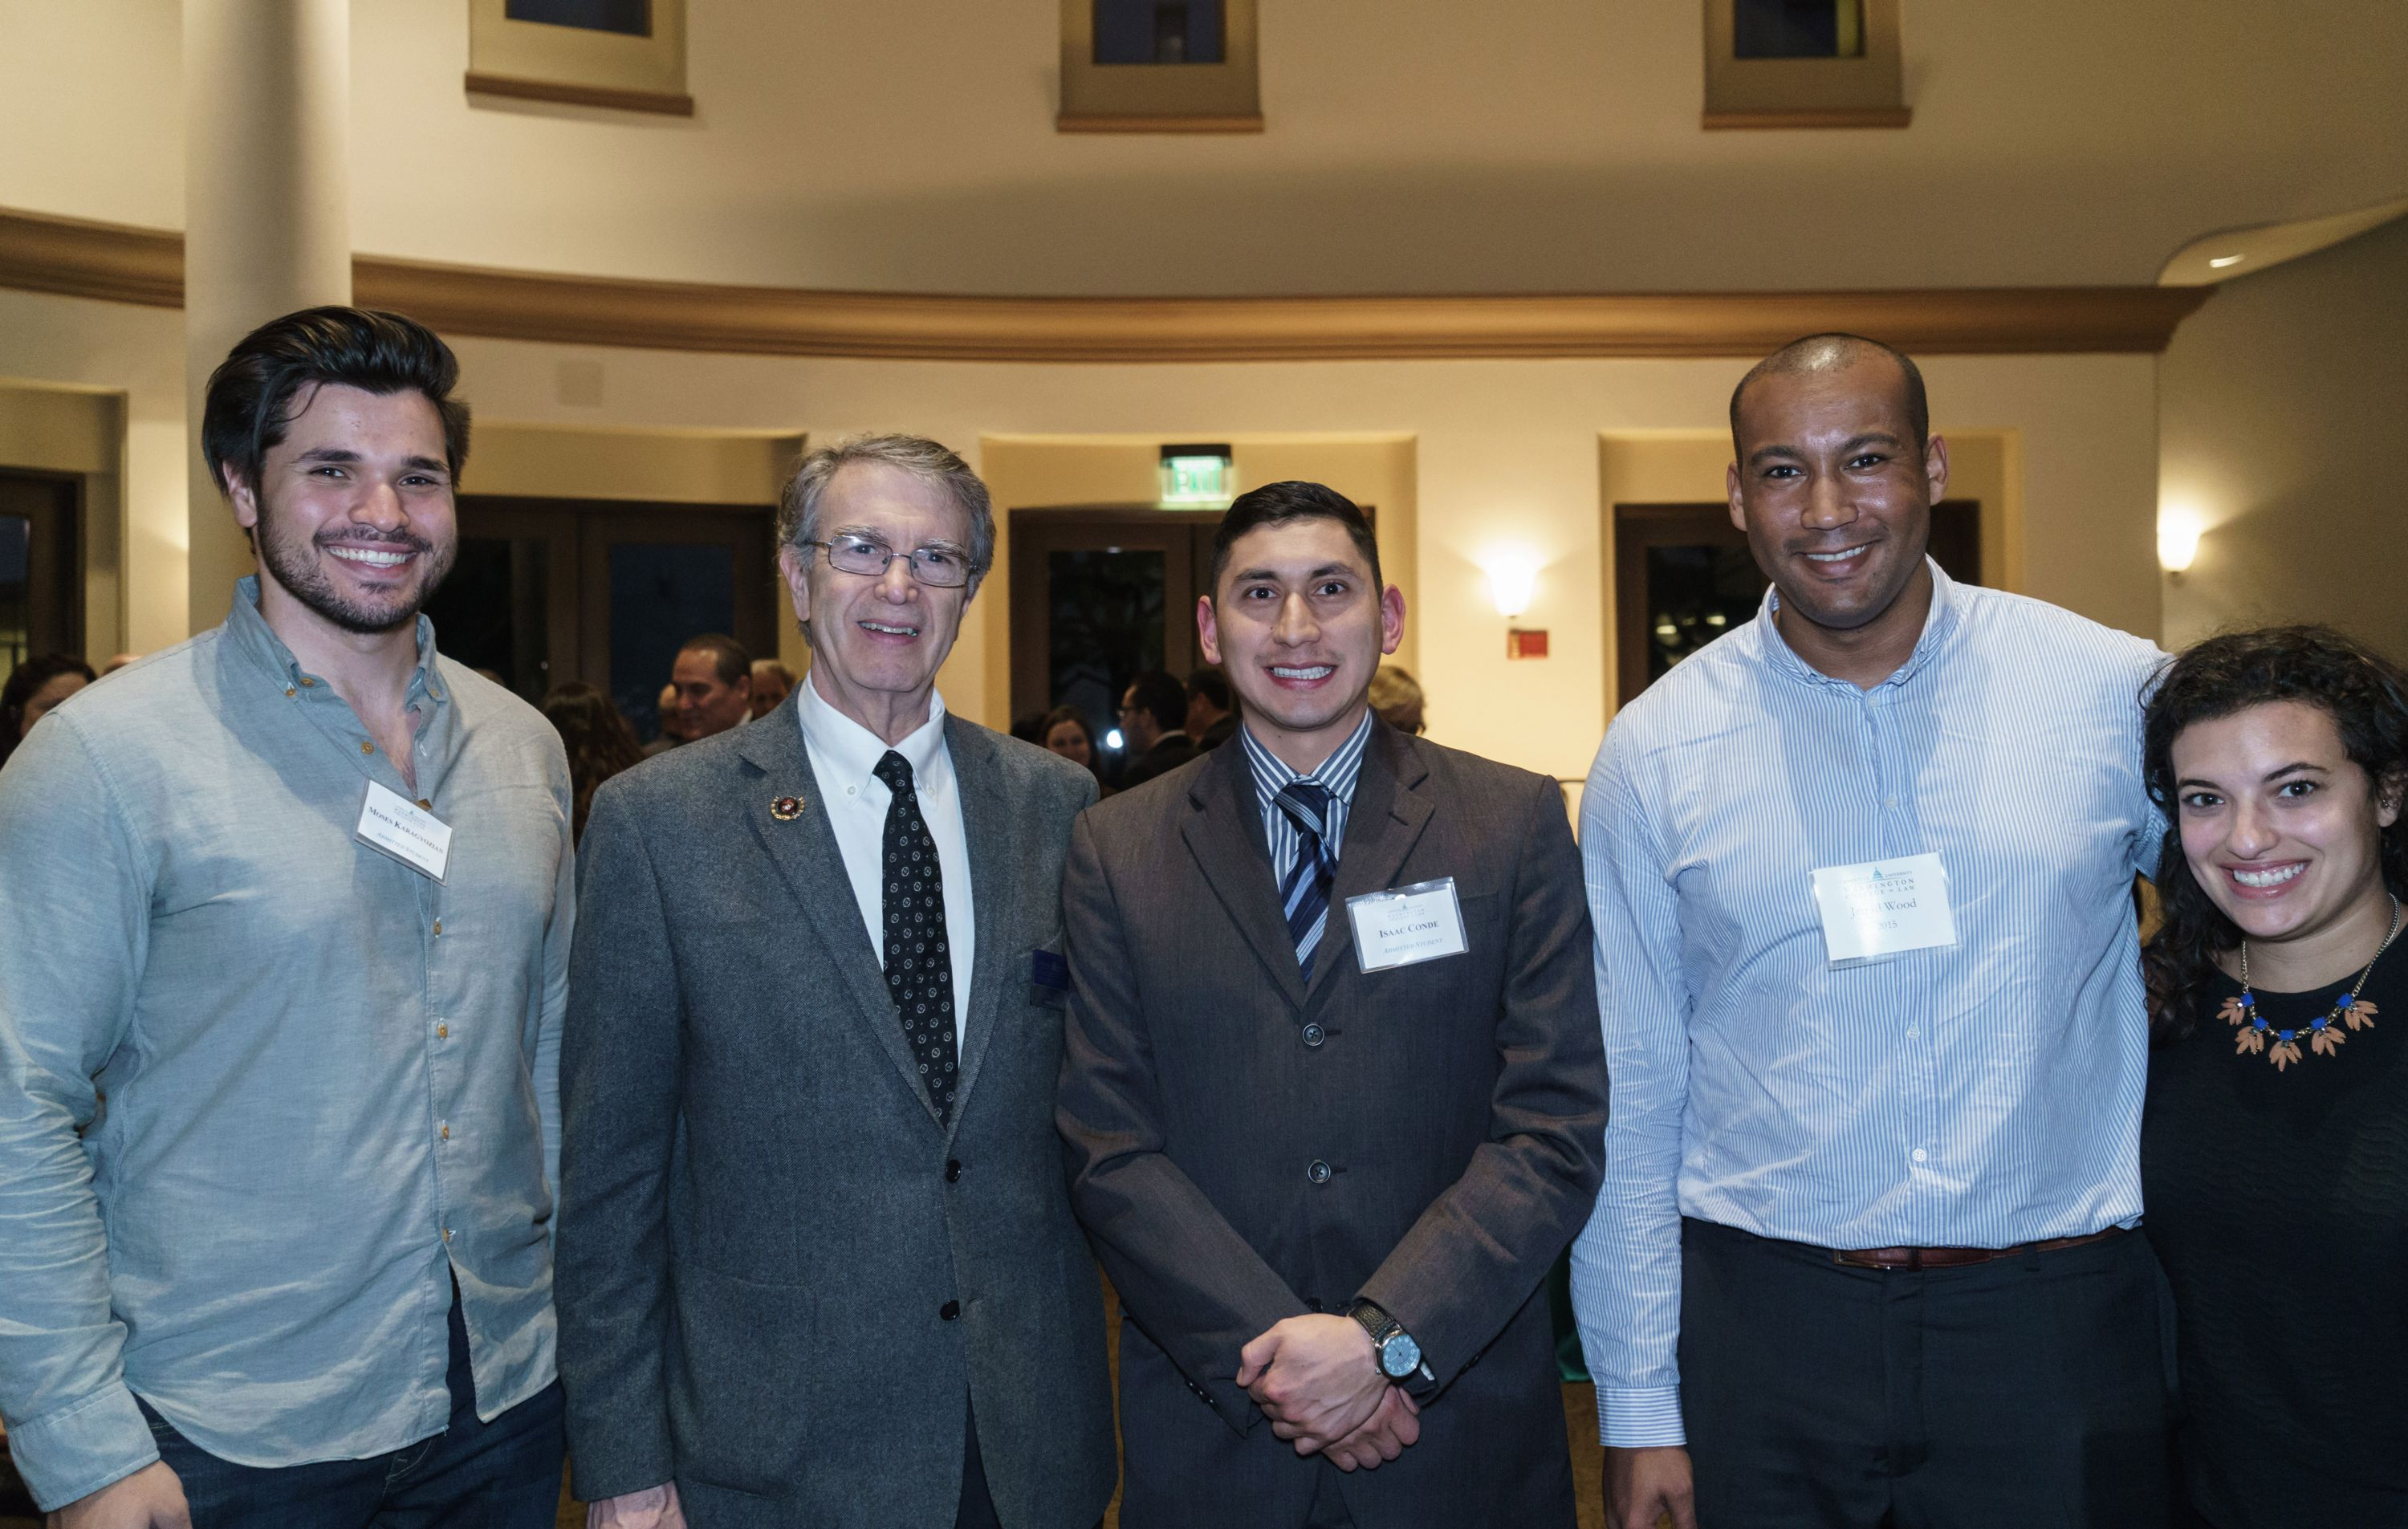 Professor Andrew F. Popper with admitted student Moses Karagyozian, admitted student Issac Conde, Jarrad Wood '15, and guest